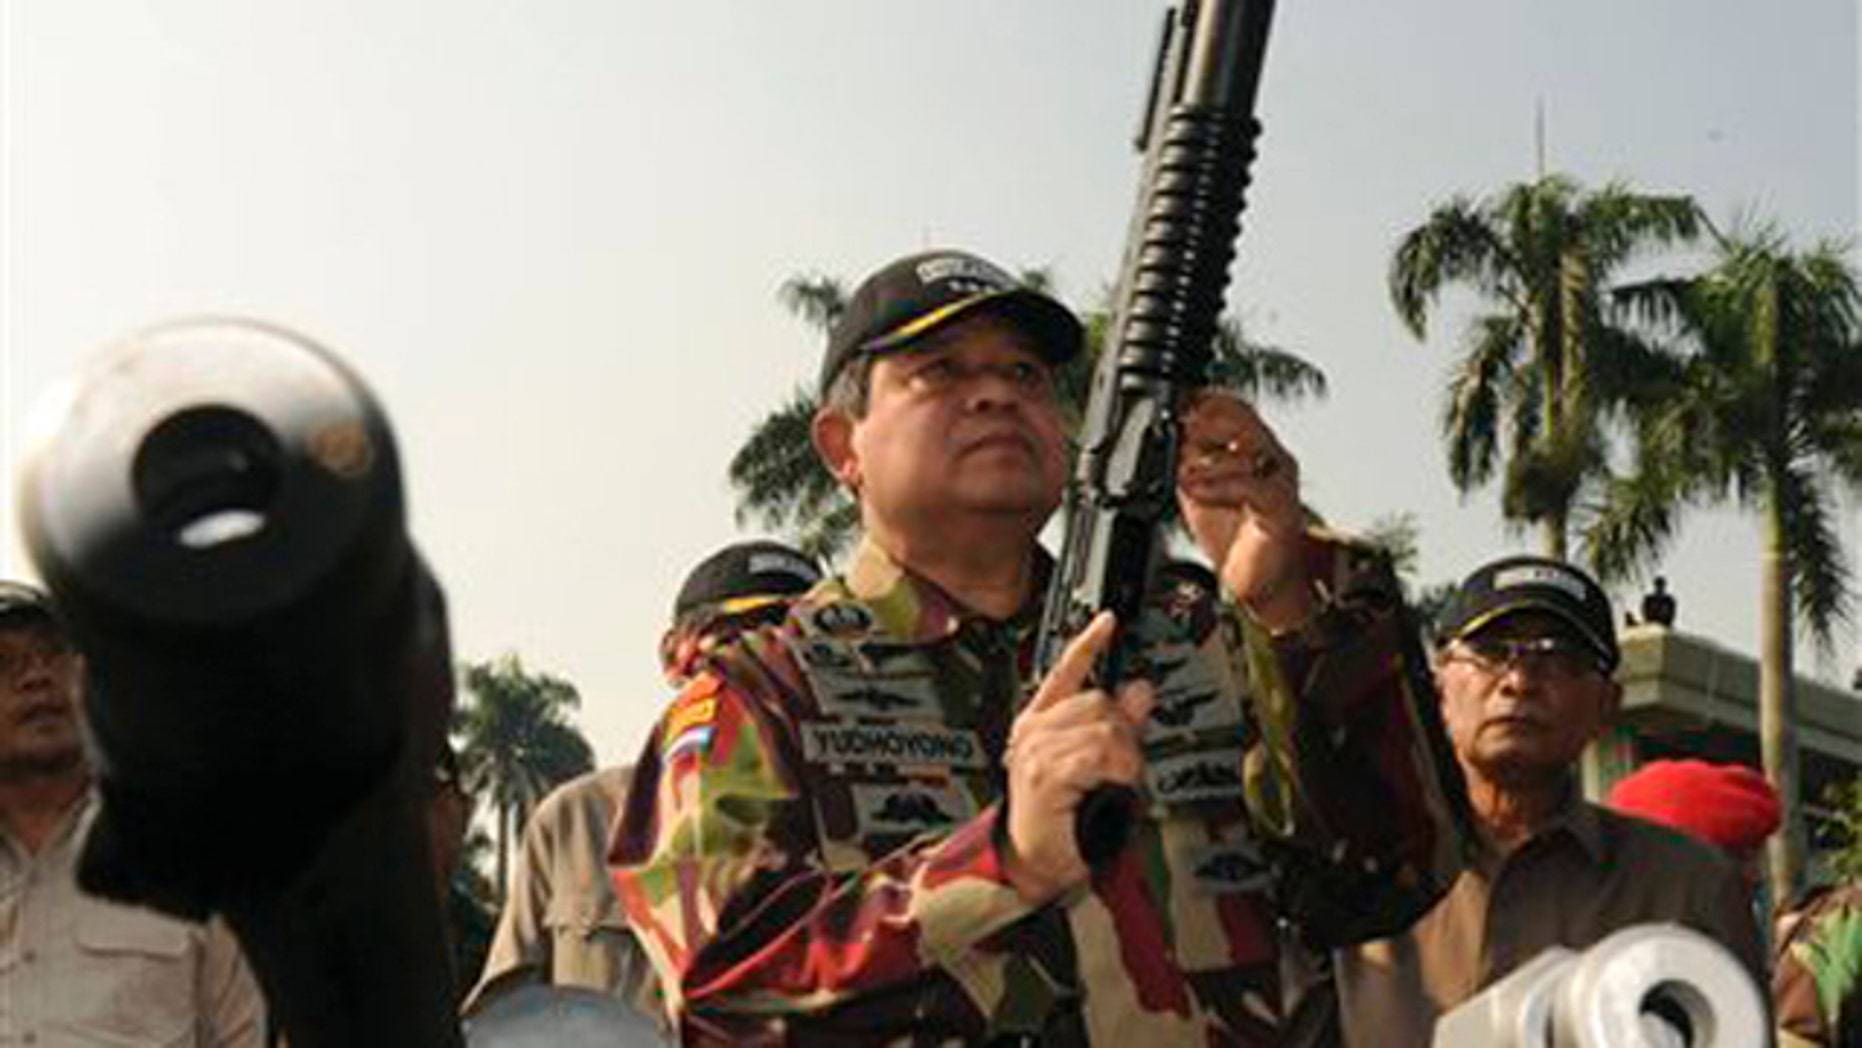 In this Aug. 20, 2009, file photo released by Indonesian Presidential Office, Indonesian President Susilo Bambang Yudhoyono, center, inspects an assault rifle during his visit to Special Forces Commandos (KOPASSUS) headquarters in Jakarta, Indonesia.